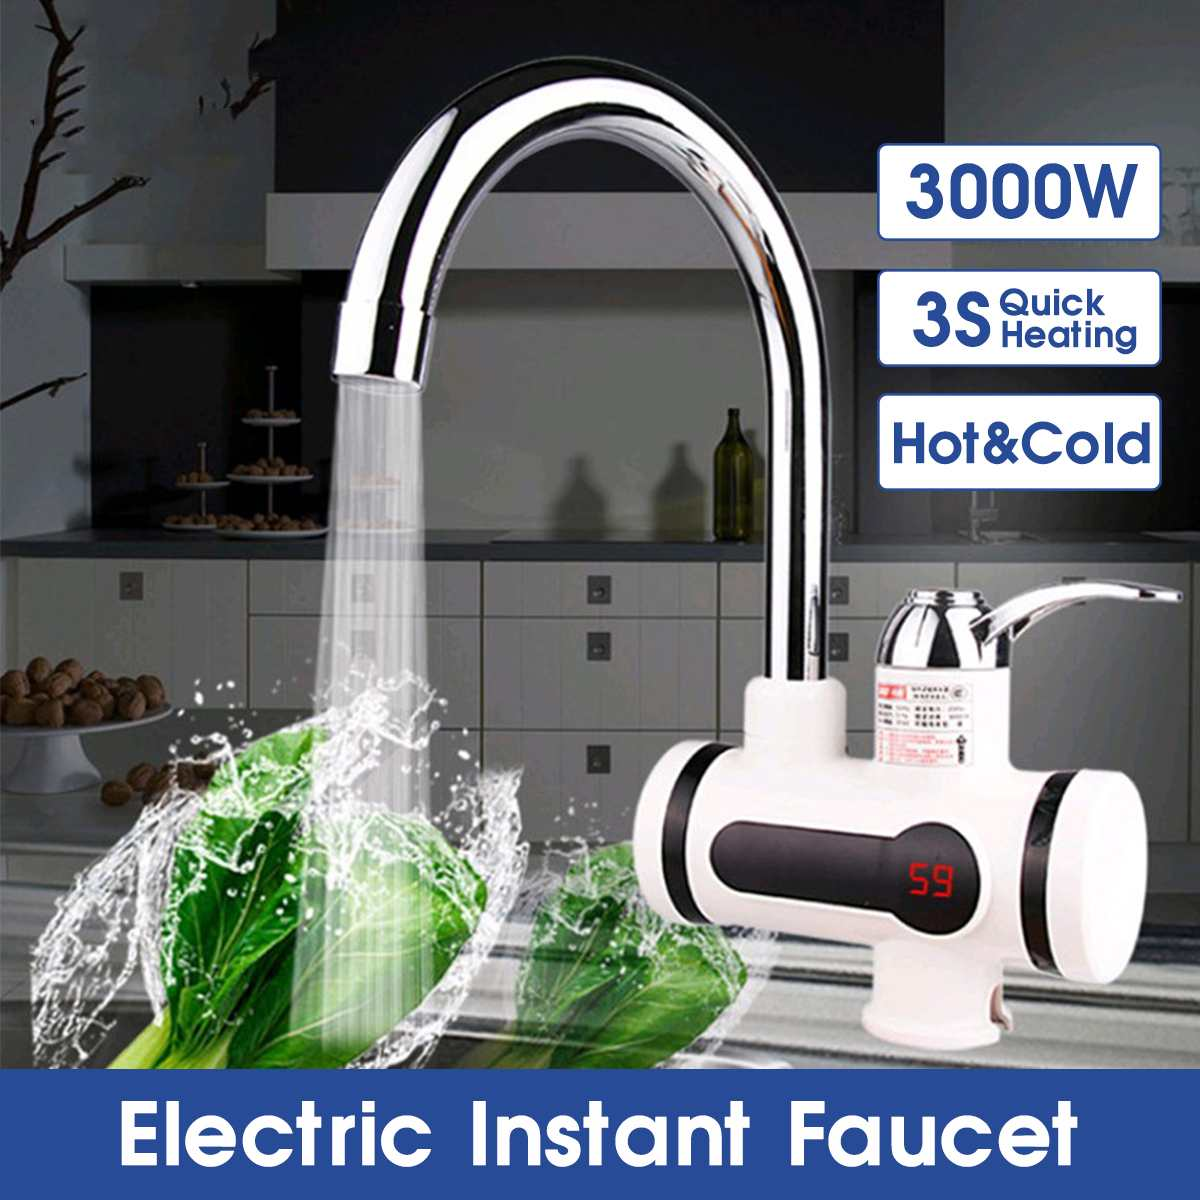 3000W LED Display Electric Water Heater Tap Instant Hot Water Faucet Heater Heating Faucet Tankless Instantaneous Water Heater